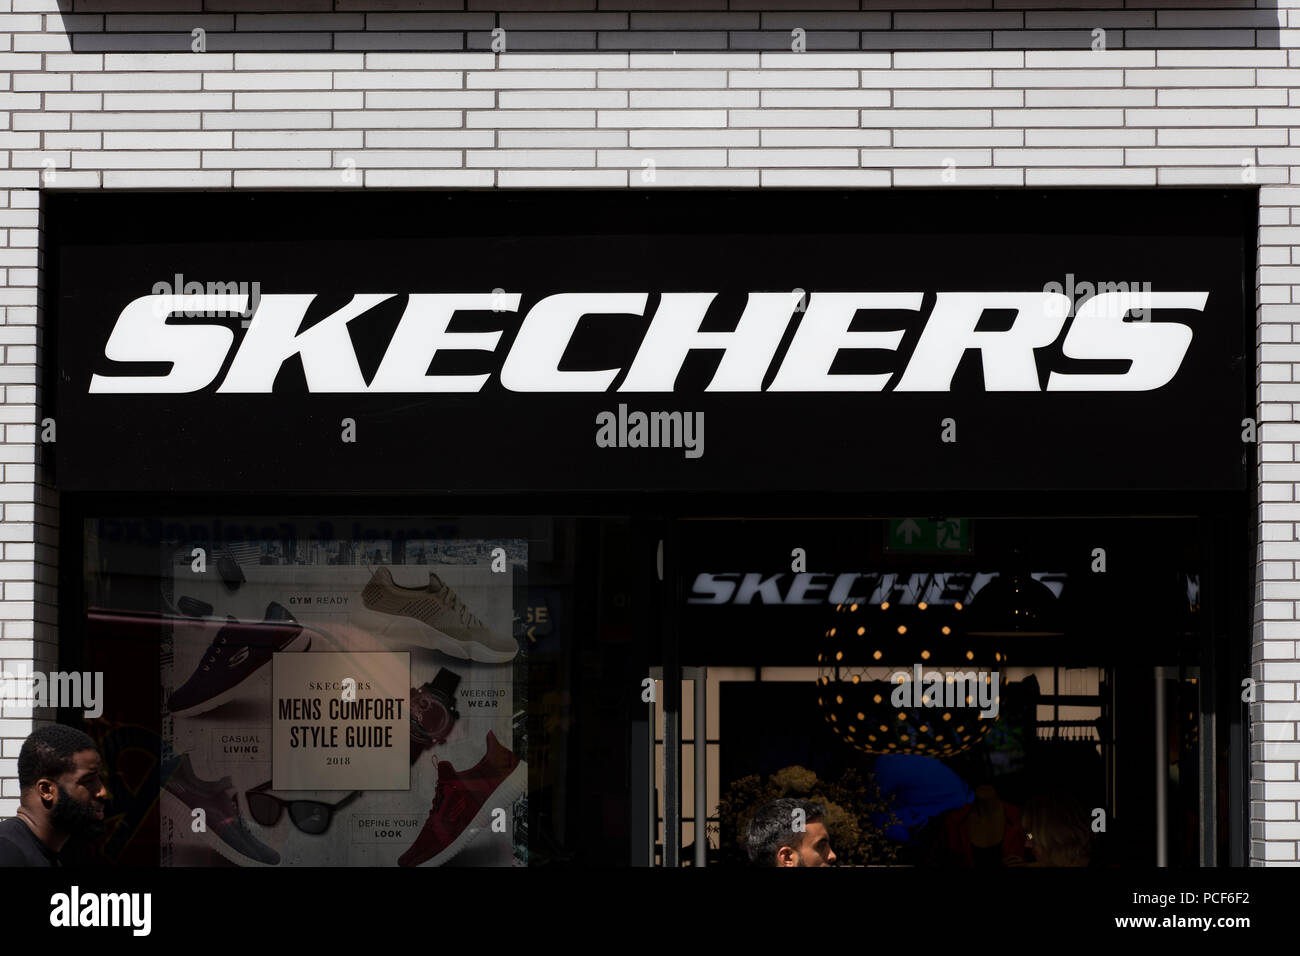 Drop Front Shoe Box Australia Skechers Shoes Stock Photos And Skechers Shoes Stock Images